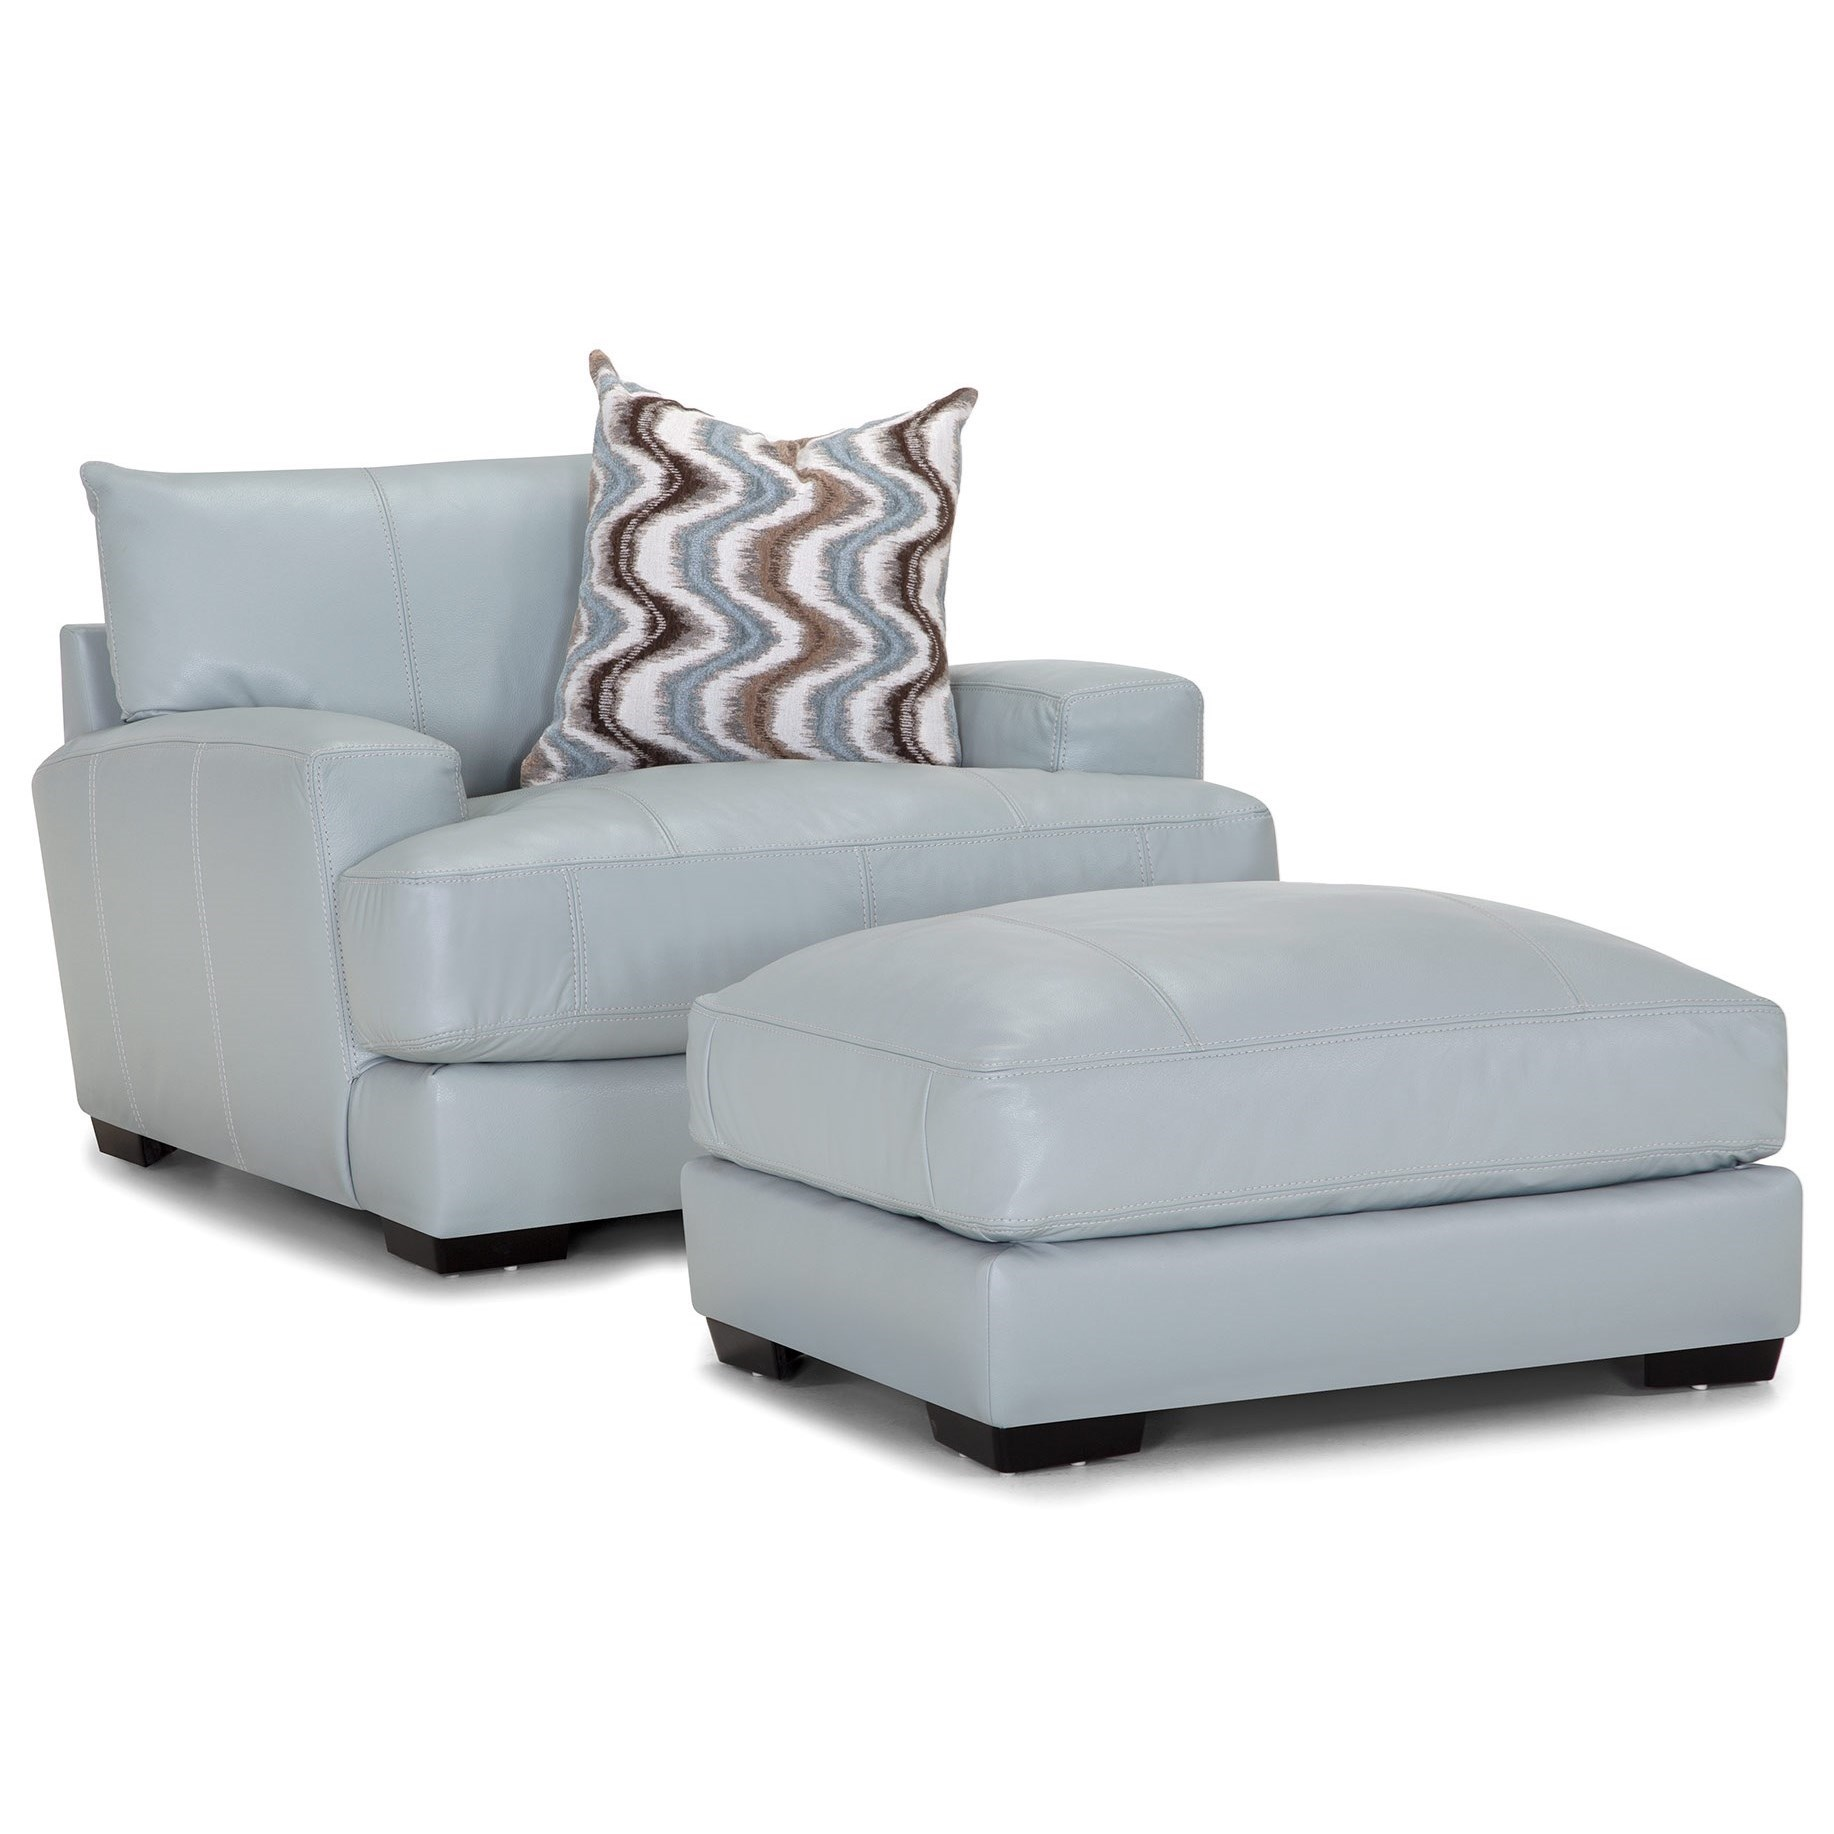 909 Chair and a Half with Ottoman by Franklin at Turk Furniture